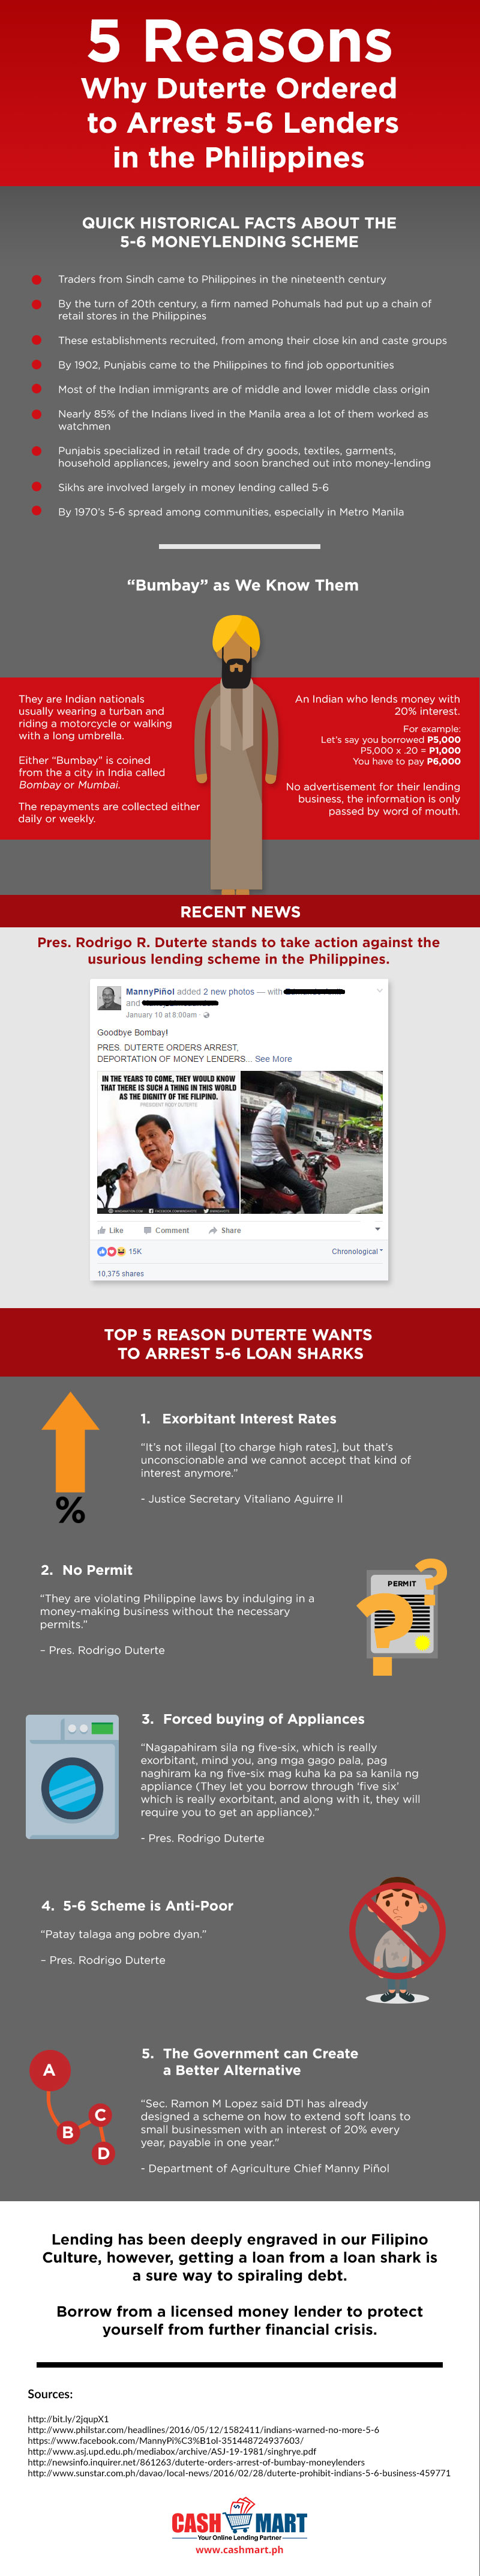 5-reasons-why-duterte-ordered-to-arrest-5-6-money-lenders-in-the-philippines